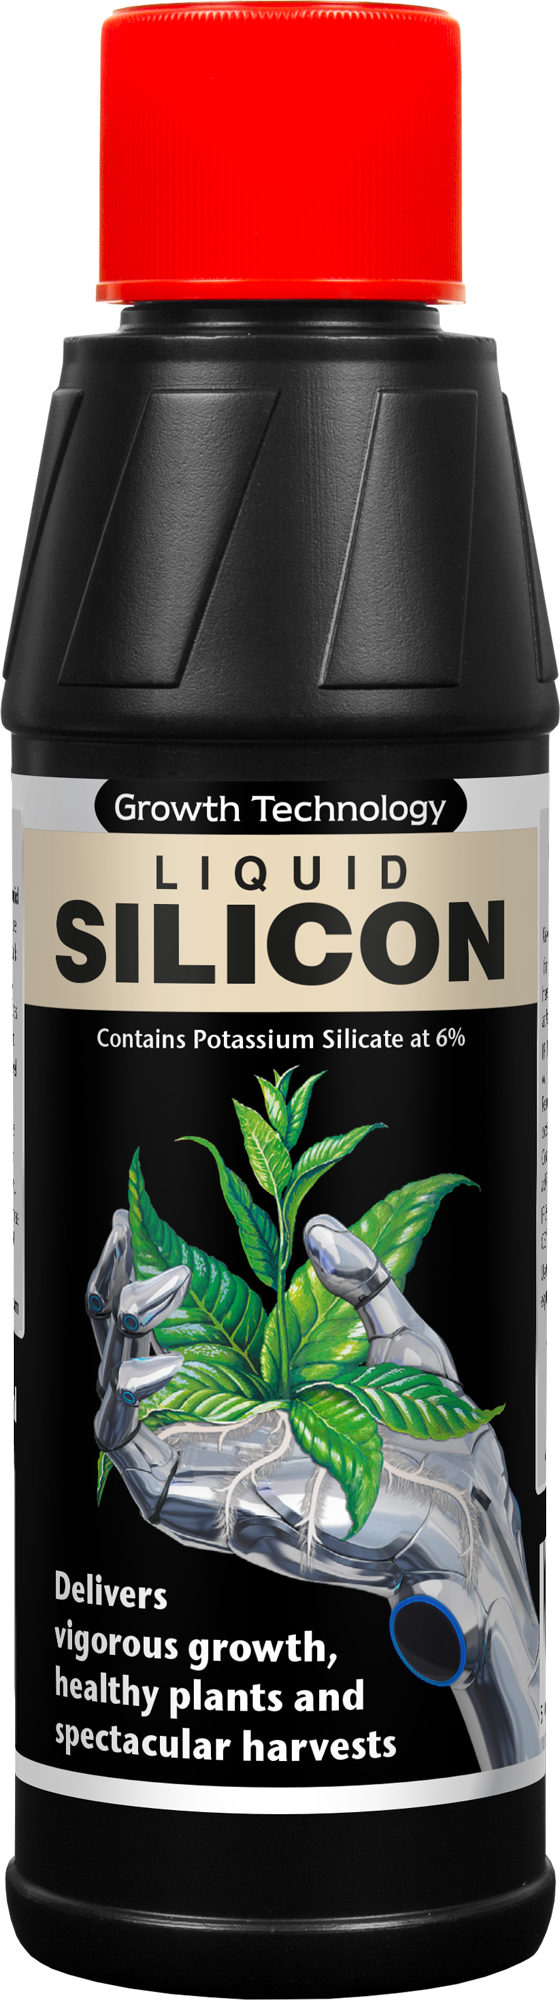 Growth Technology - Liquid Silicon - NPK Technology Hydroponics